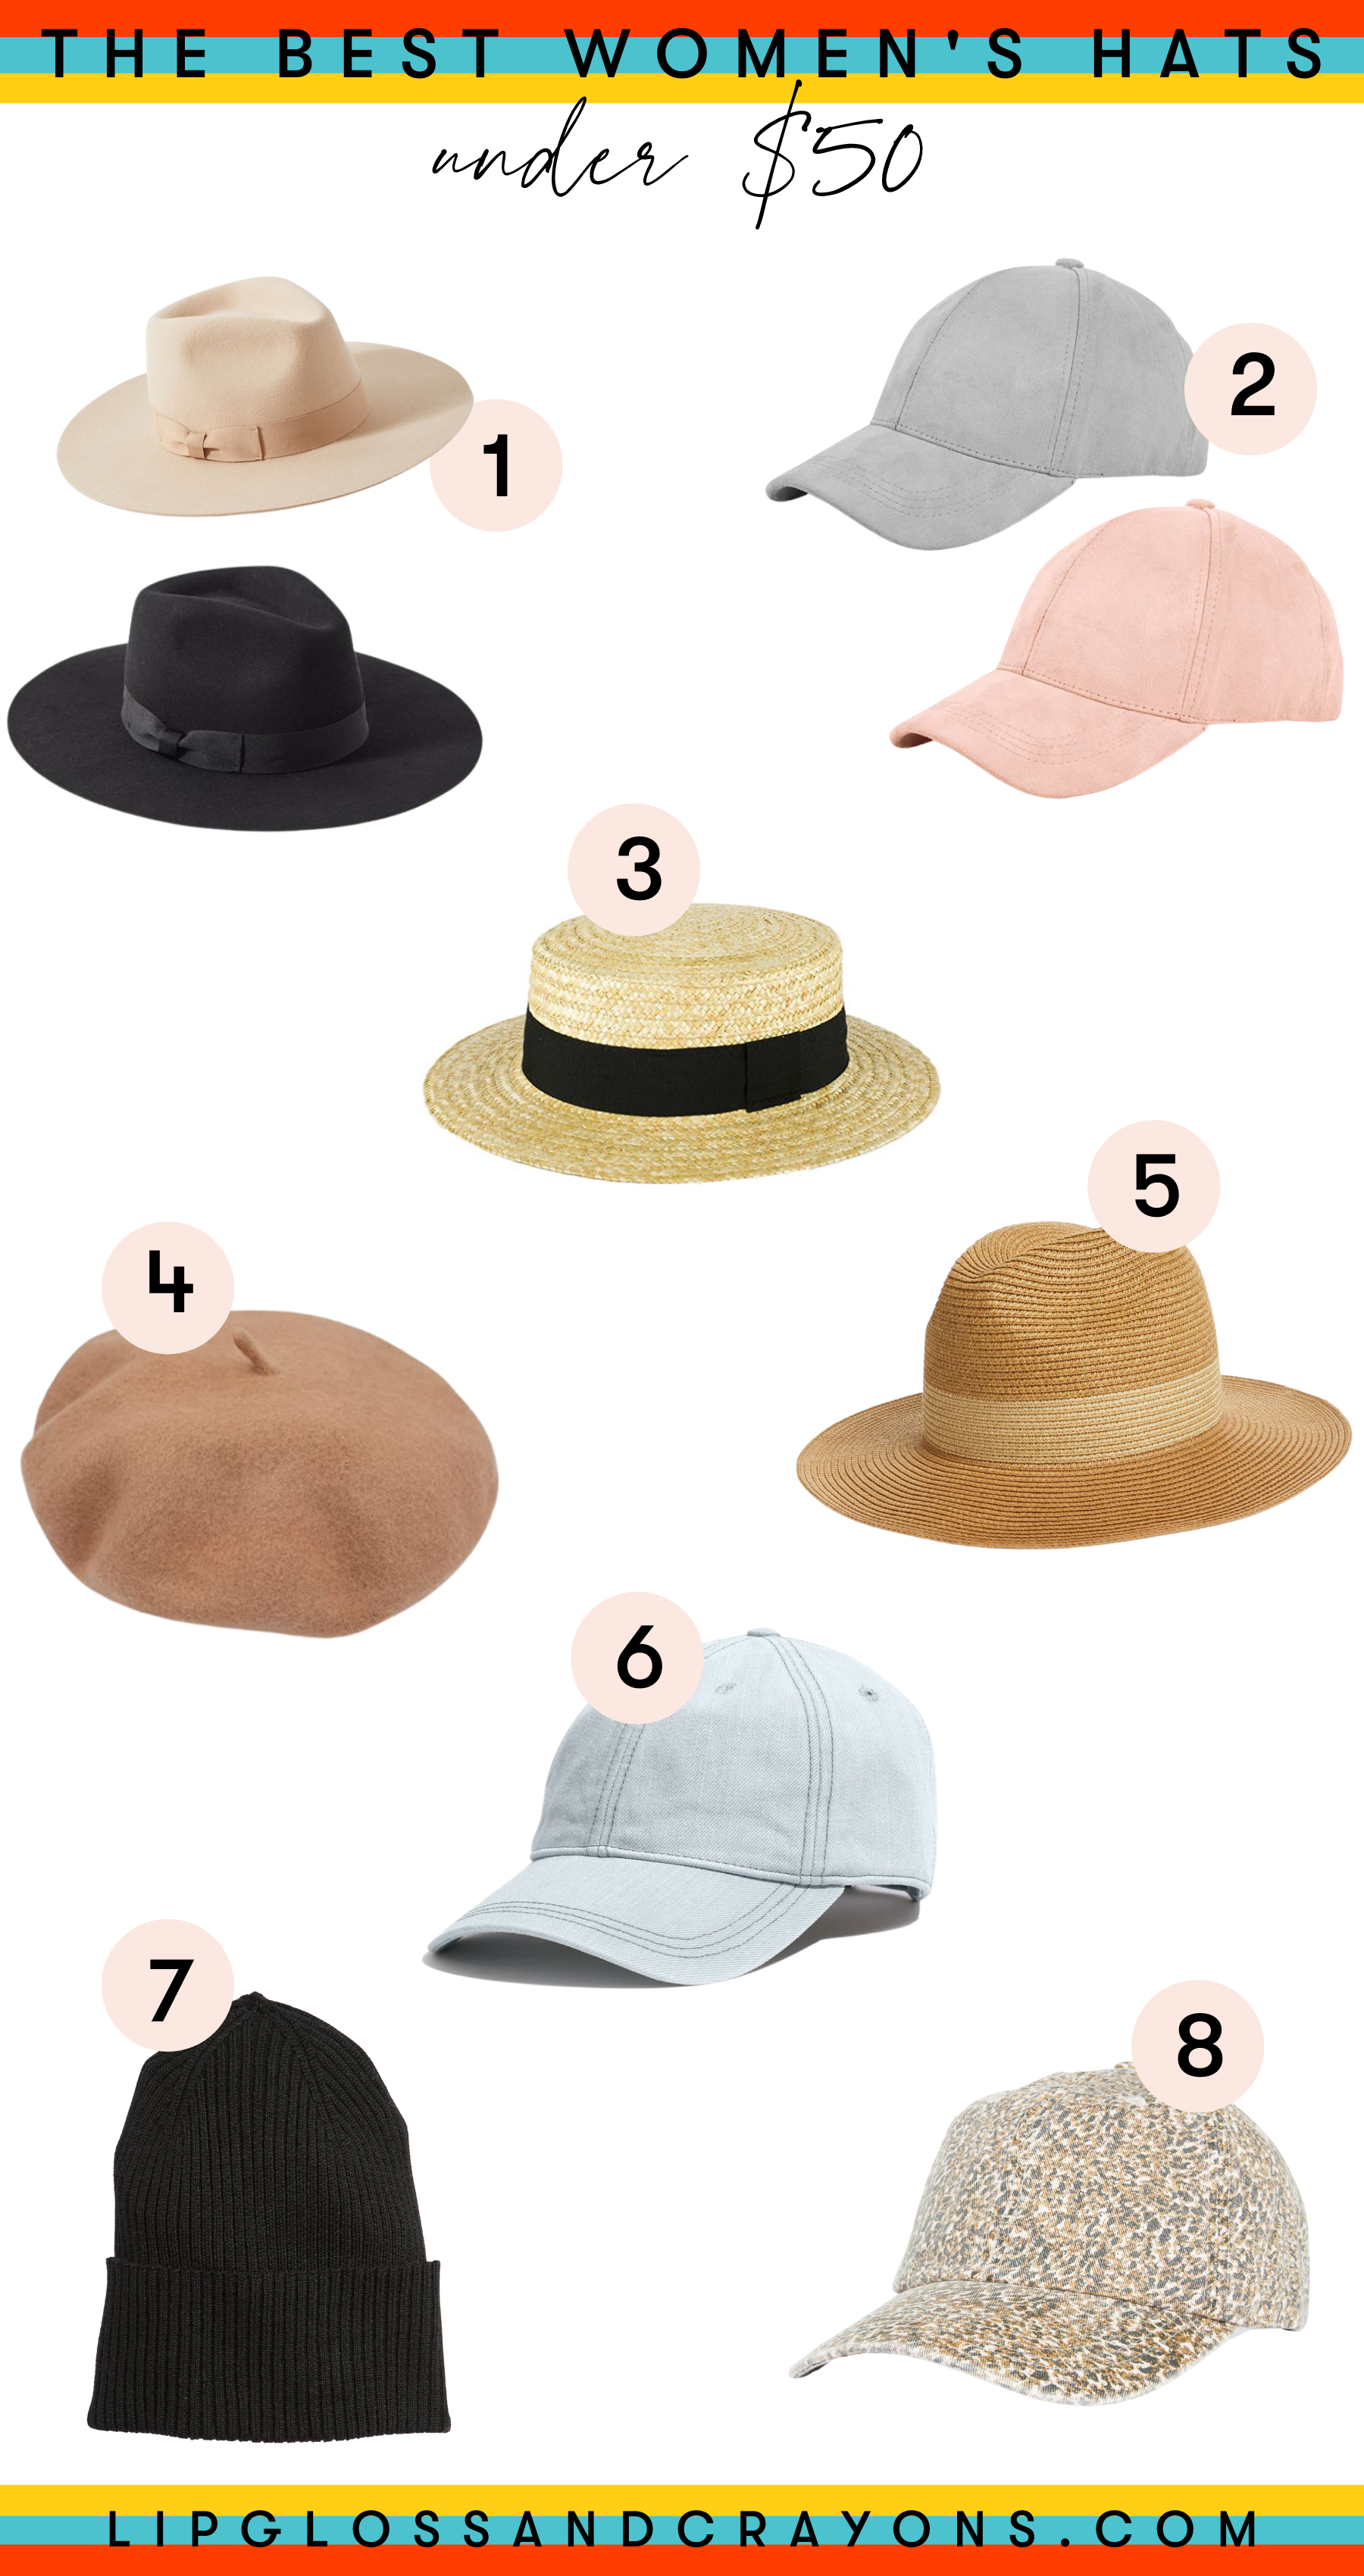 On the hunt for the best hats for women that won't break the bank? From baseball hats to fedoras.....these are the great womens' hat option for under $50.